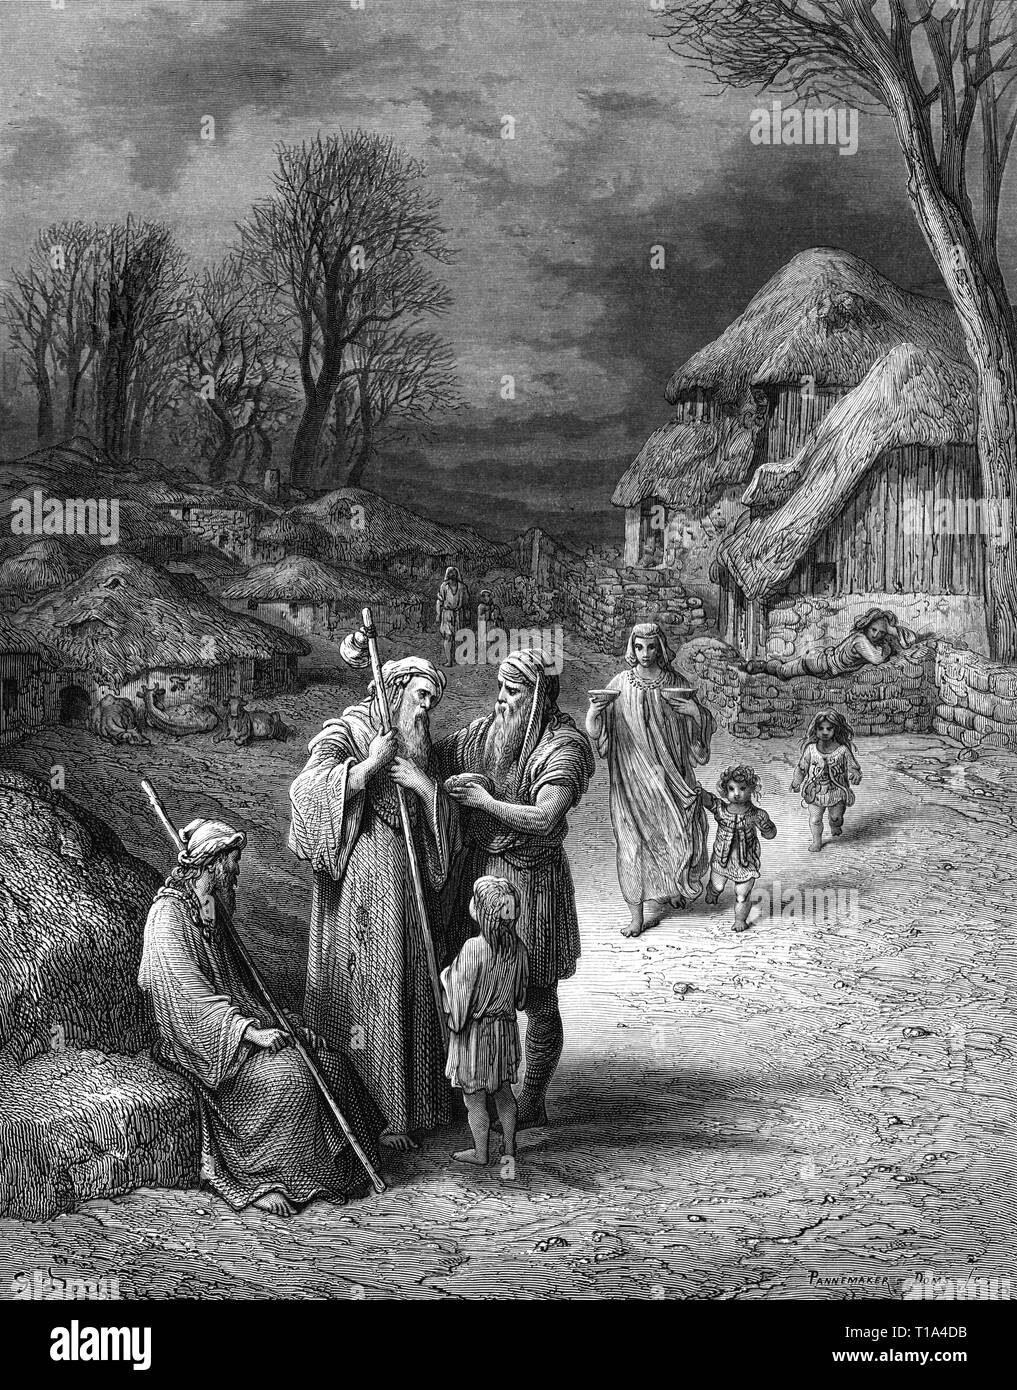 religion, Christianity, pilgrimage, hospitableness of barbarians towards pilgrims, based on Gustave Dore (1832 - 1883), wood engraving, by Francois Pannemaker, A. Doms, late 19th century, Artist's Copyright has not to be cleared - Stock Image